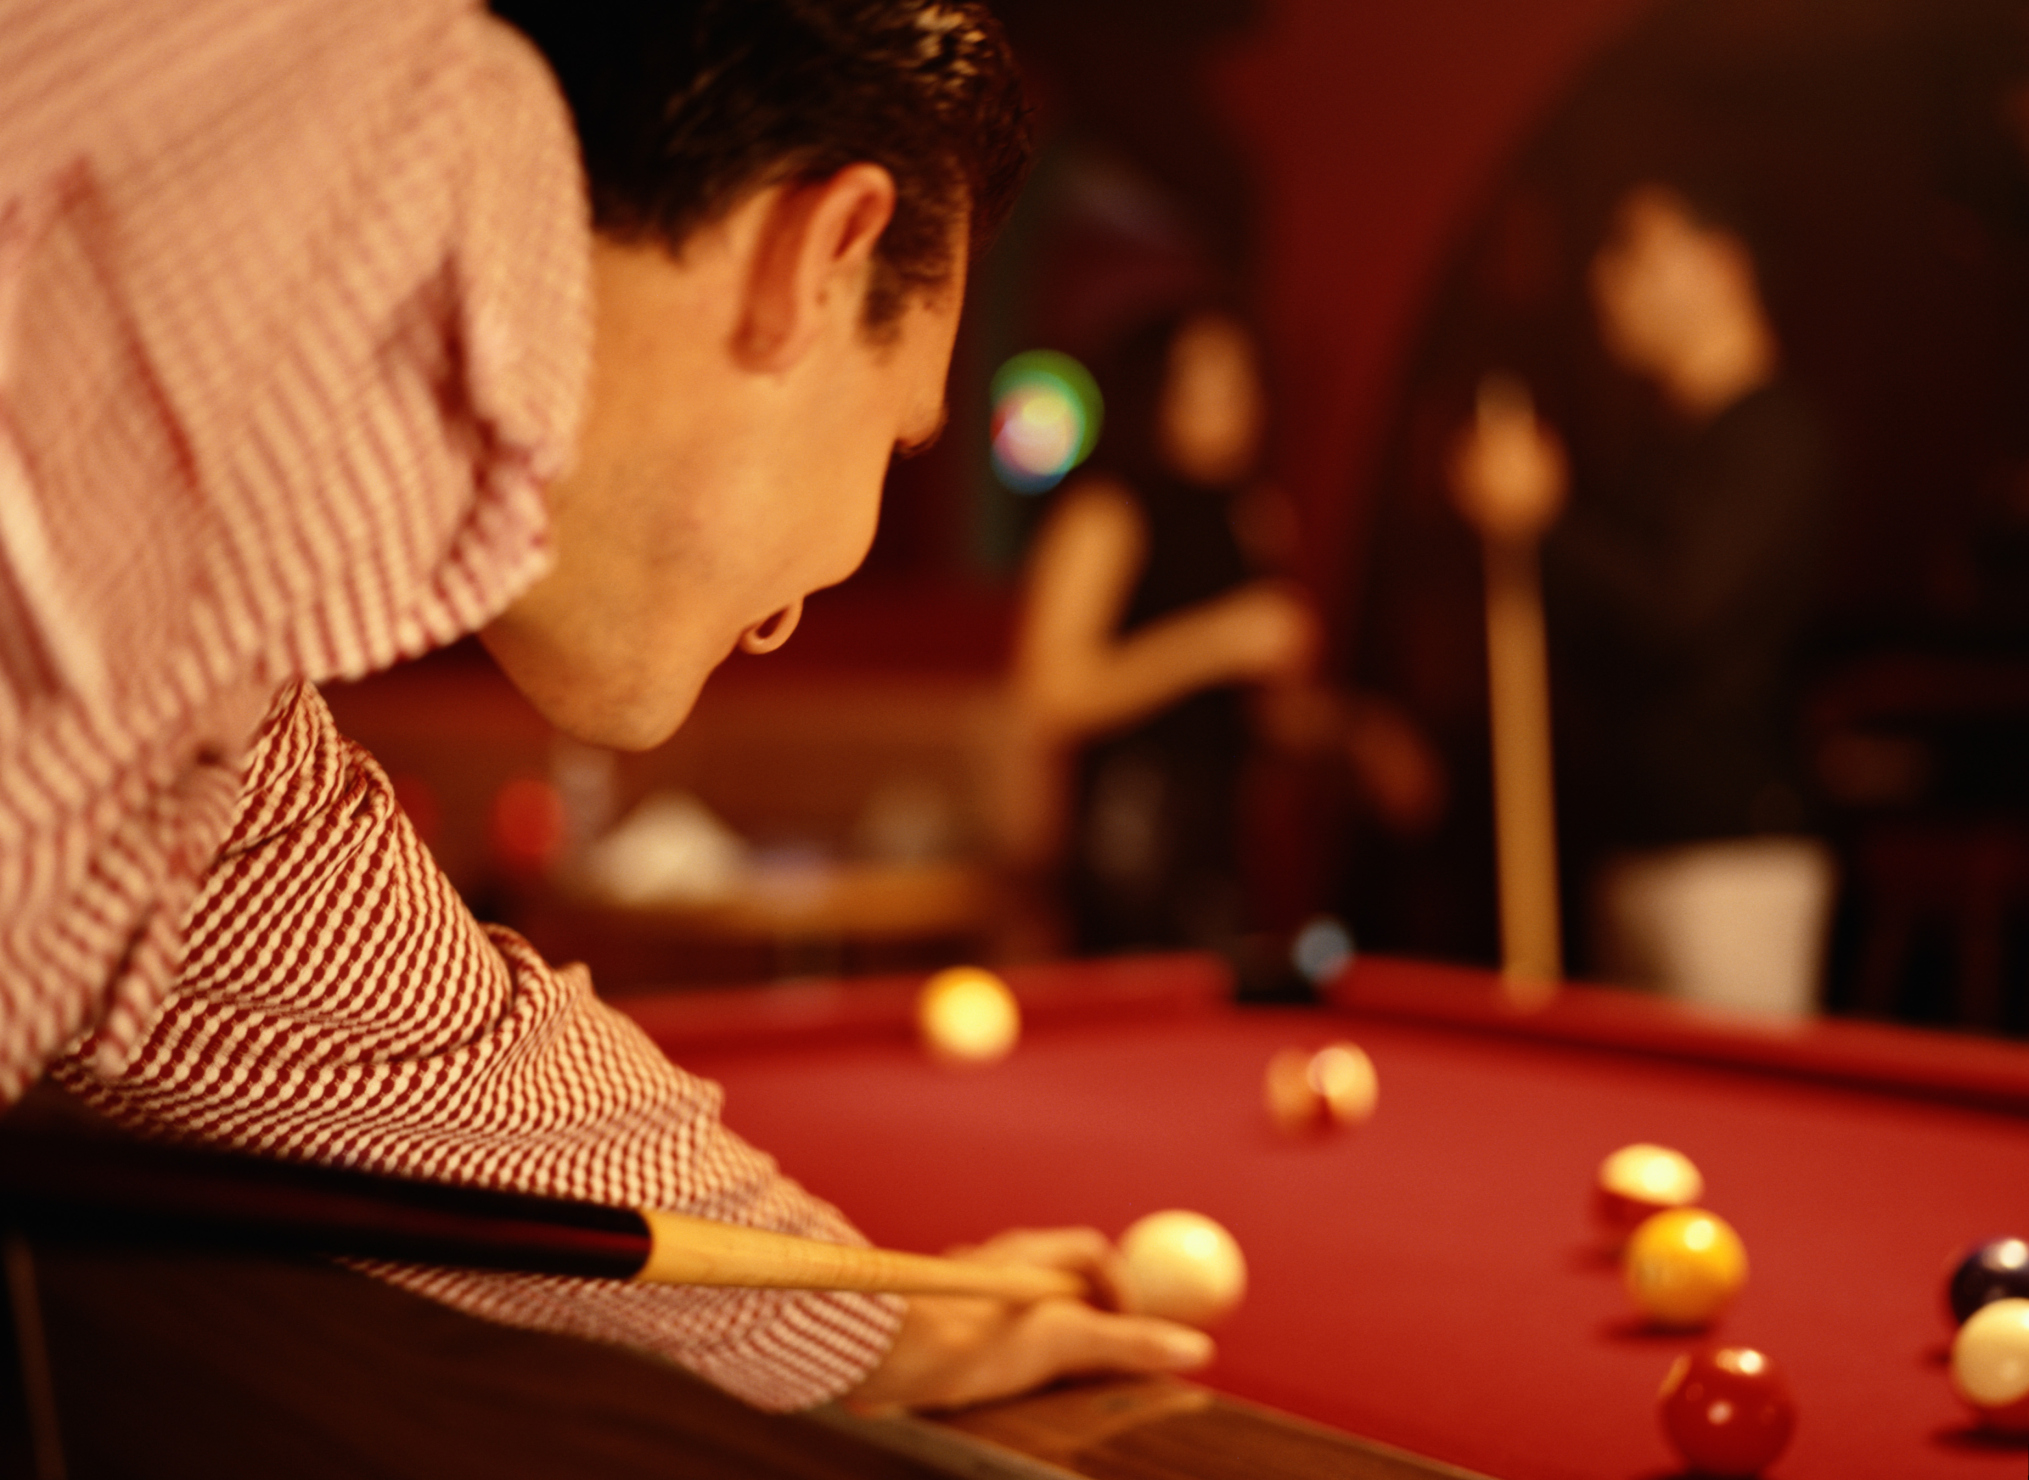 How Much Does A Professional Pool Or Billiards Player Make On